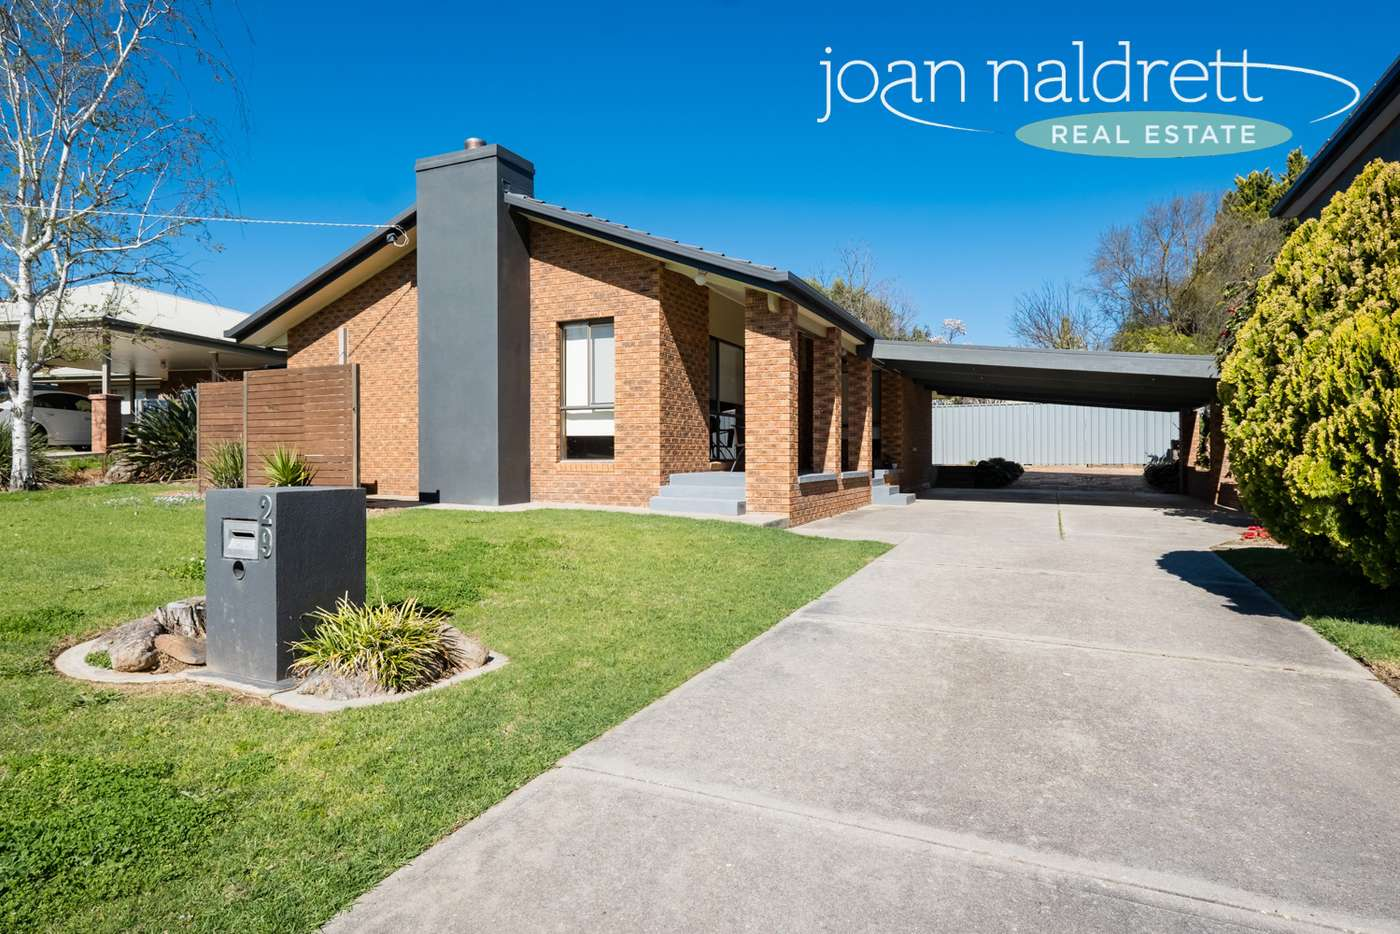 Main view of Homely house listing, 29 Huon Creek Road, Wodonga VIC 3690